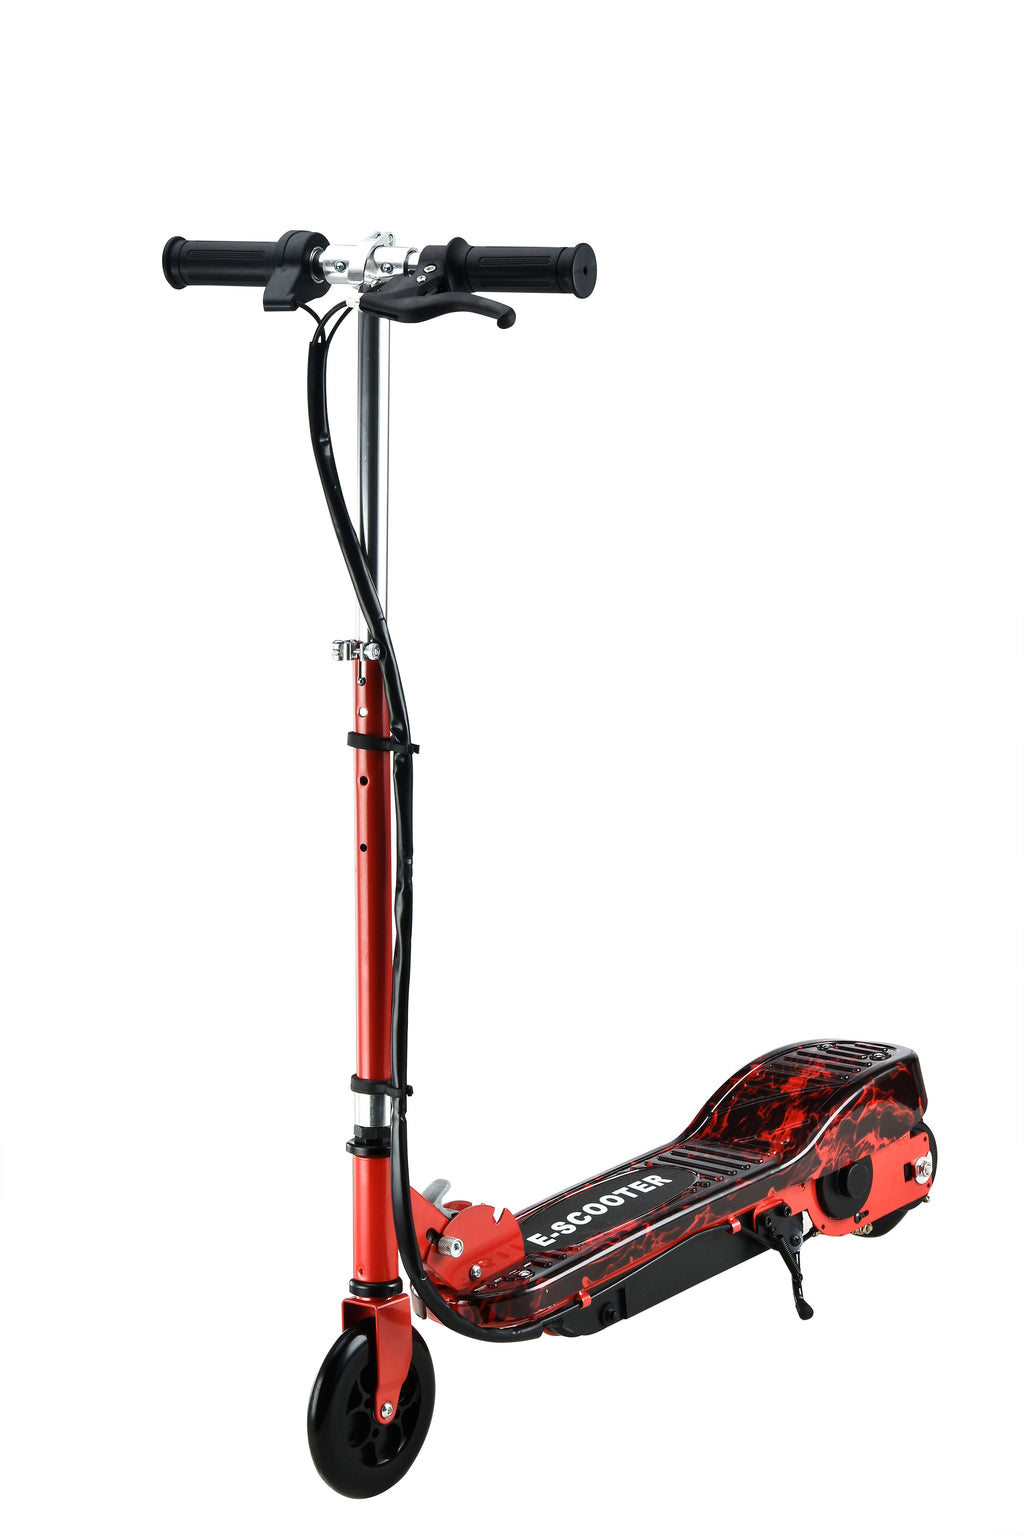 RICCO Kids 24V Electric Scooter e-Scooter Ride On WITH DETACHABLE SEAT (Model:CD02S) RED WATER TRANSFER PRINTED